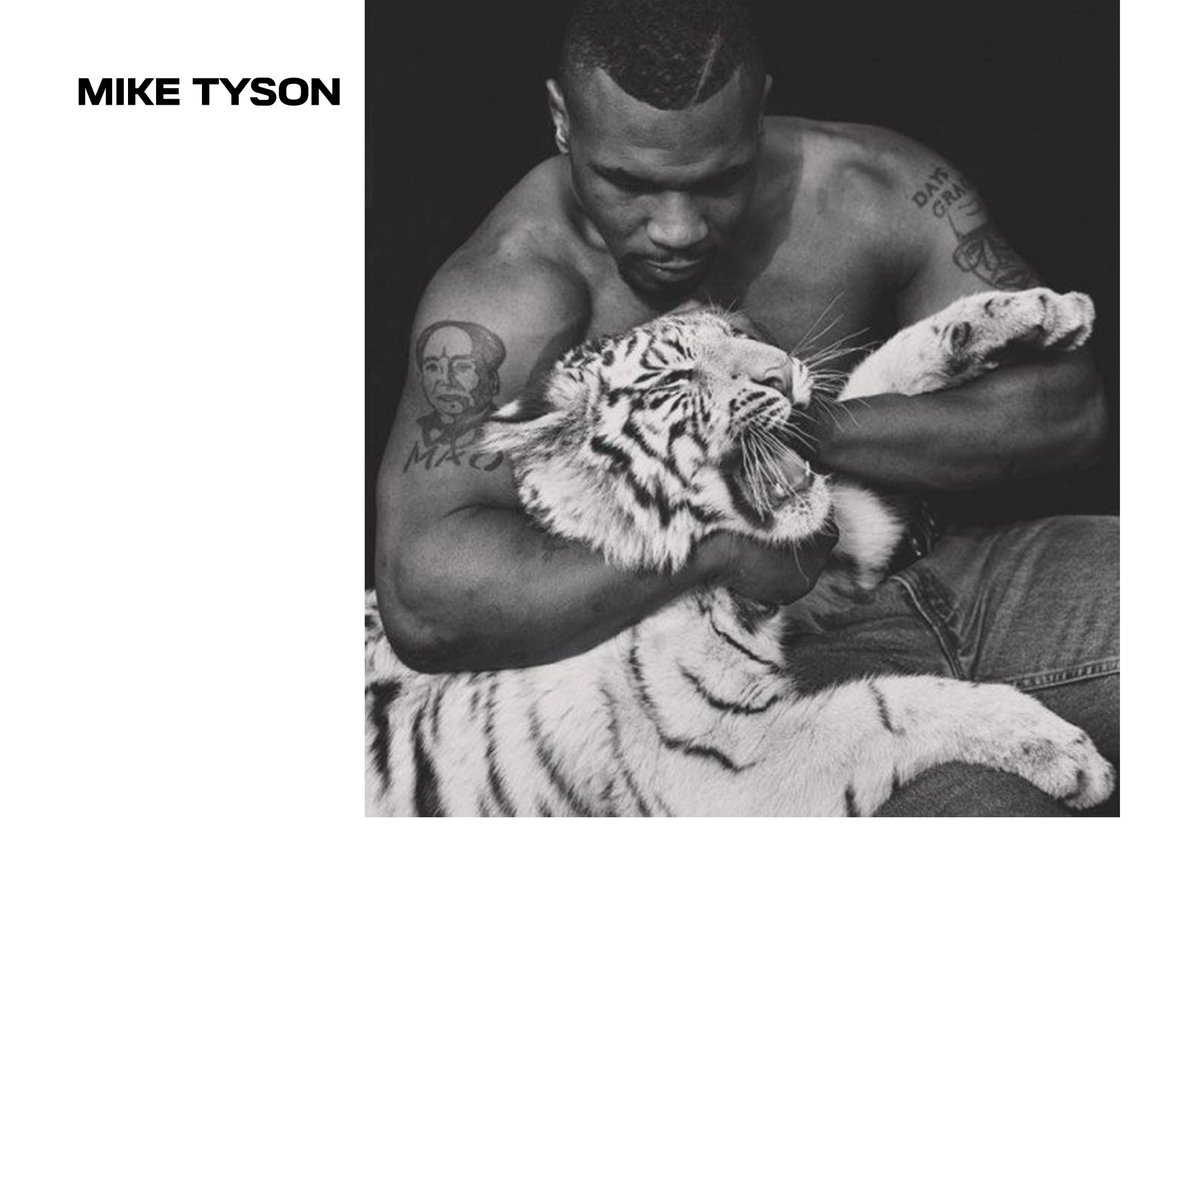 Not many can say they raised a tiger.  #vintagetyson https://t.co/Lw6qctV5gq